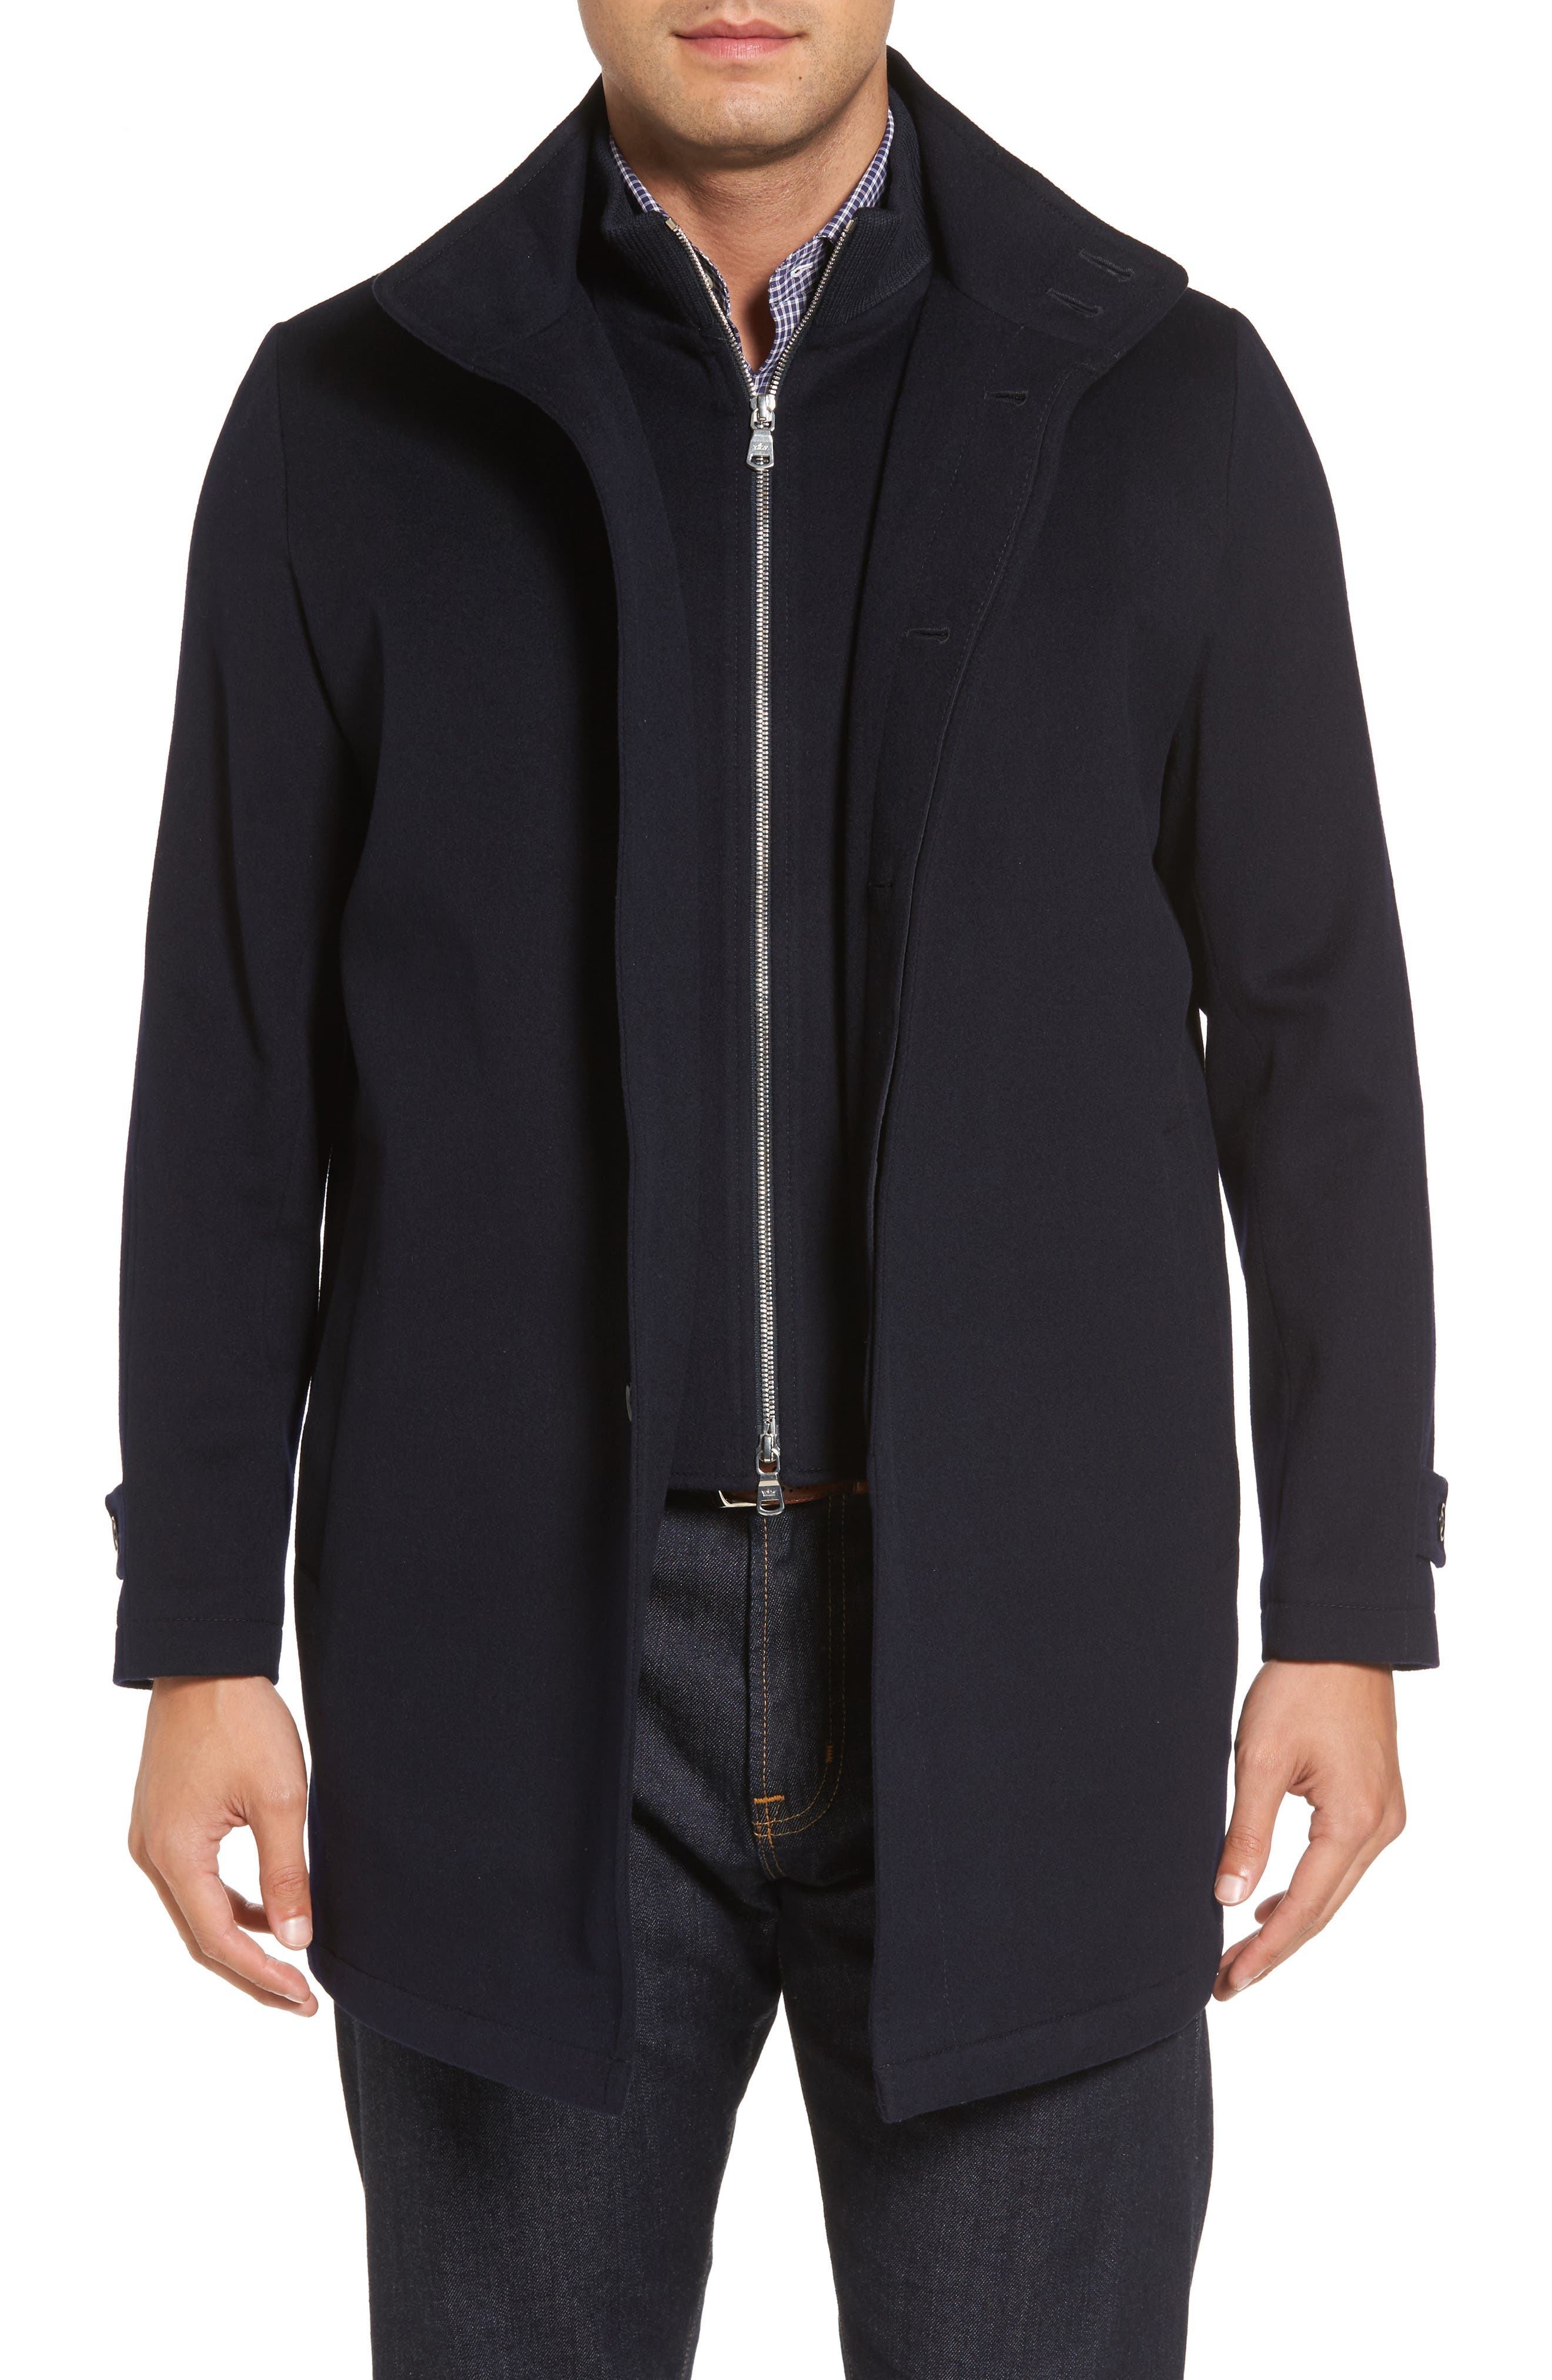 Peter Millar Horizon Wool Overcoat